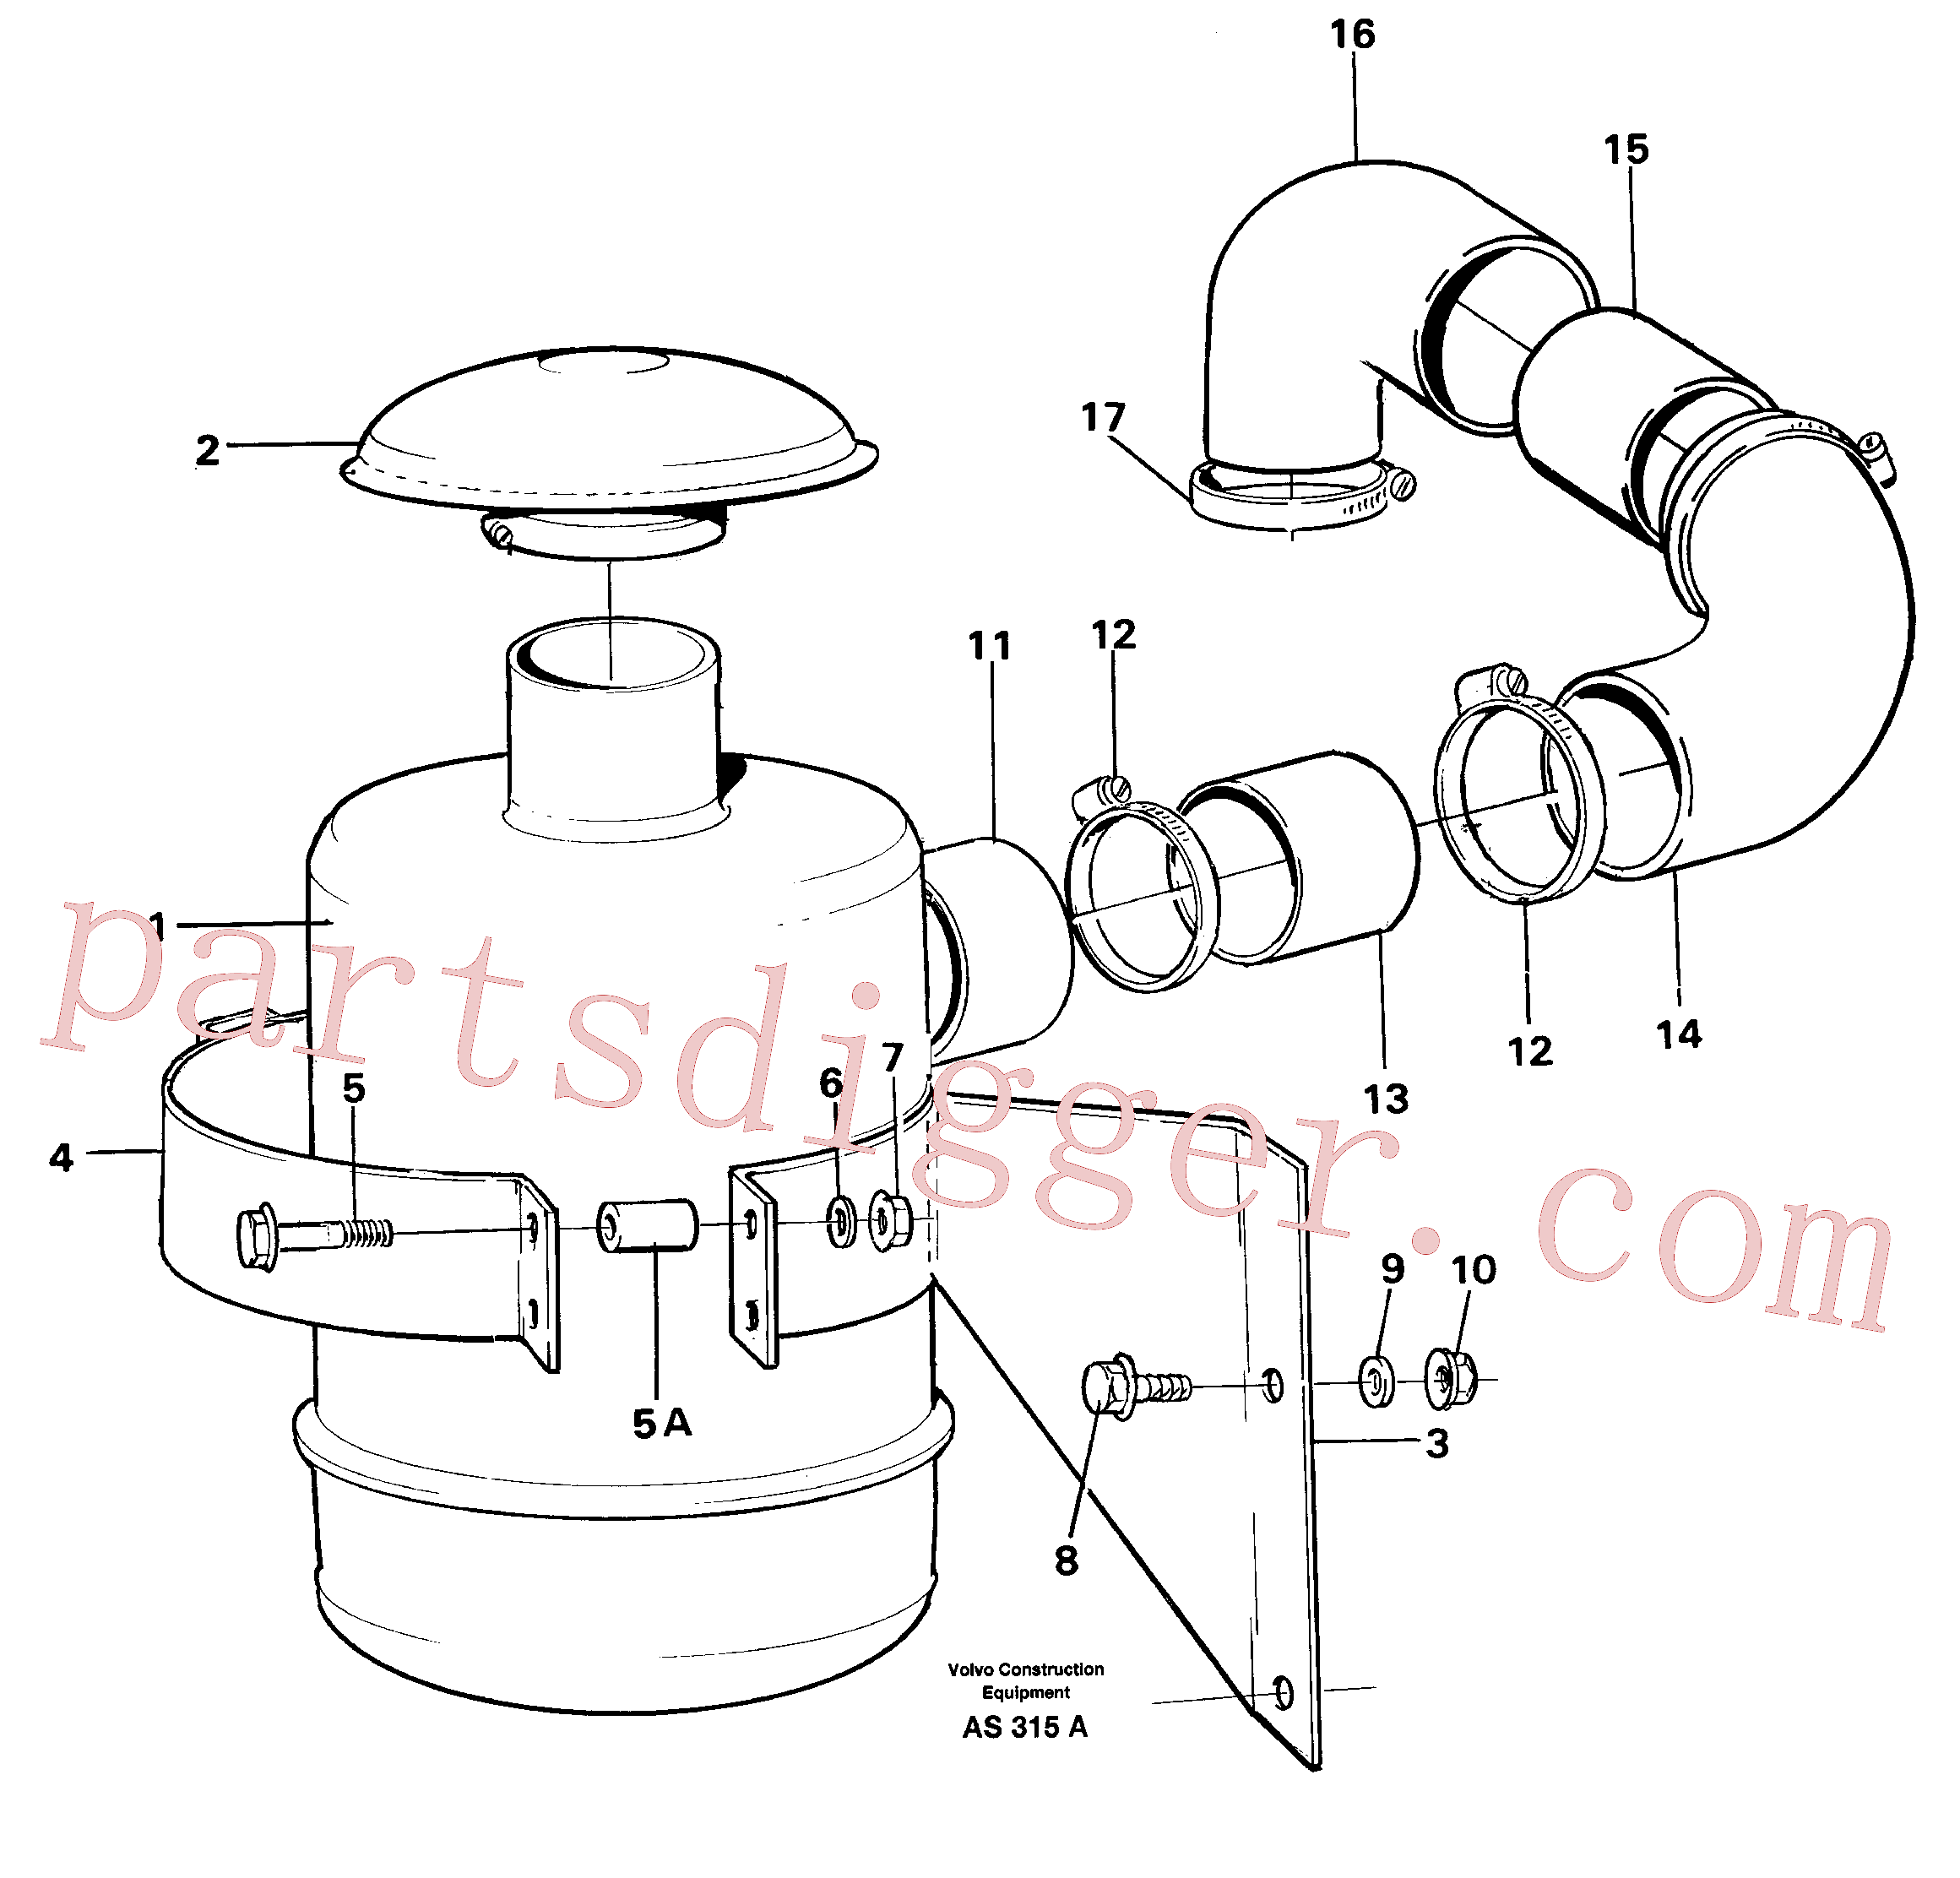 VOE961677 for Volvo Oil bath filter(AS315A assembly)